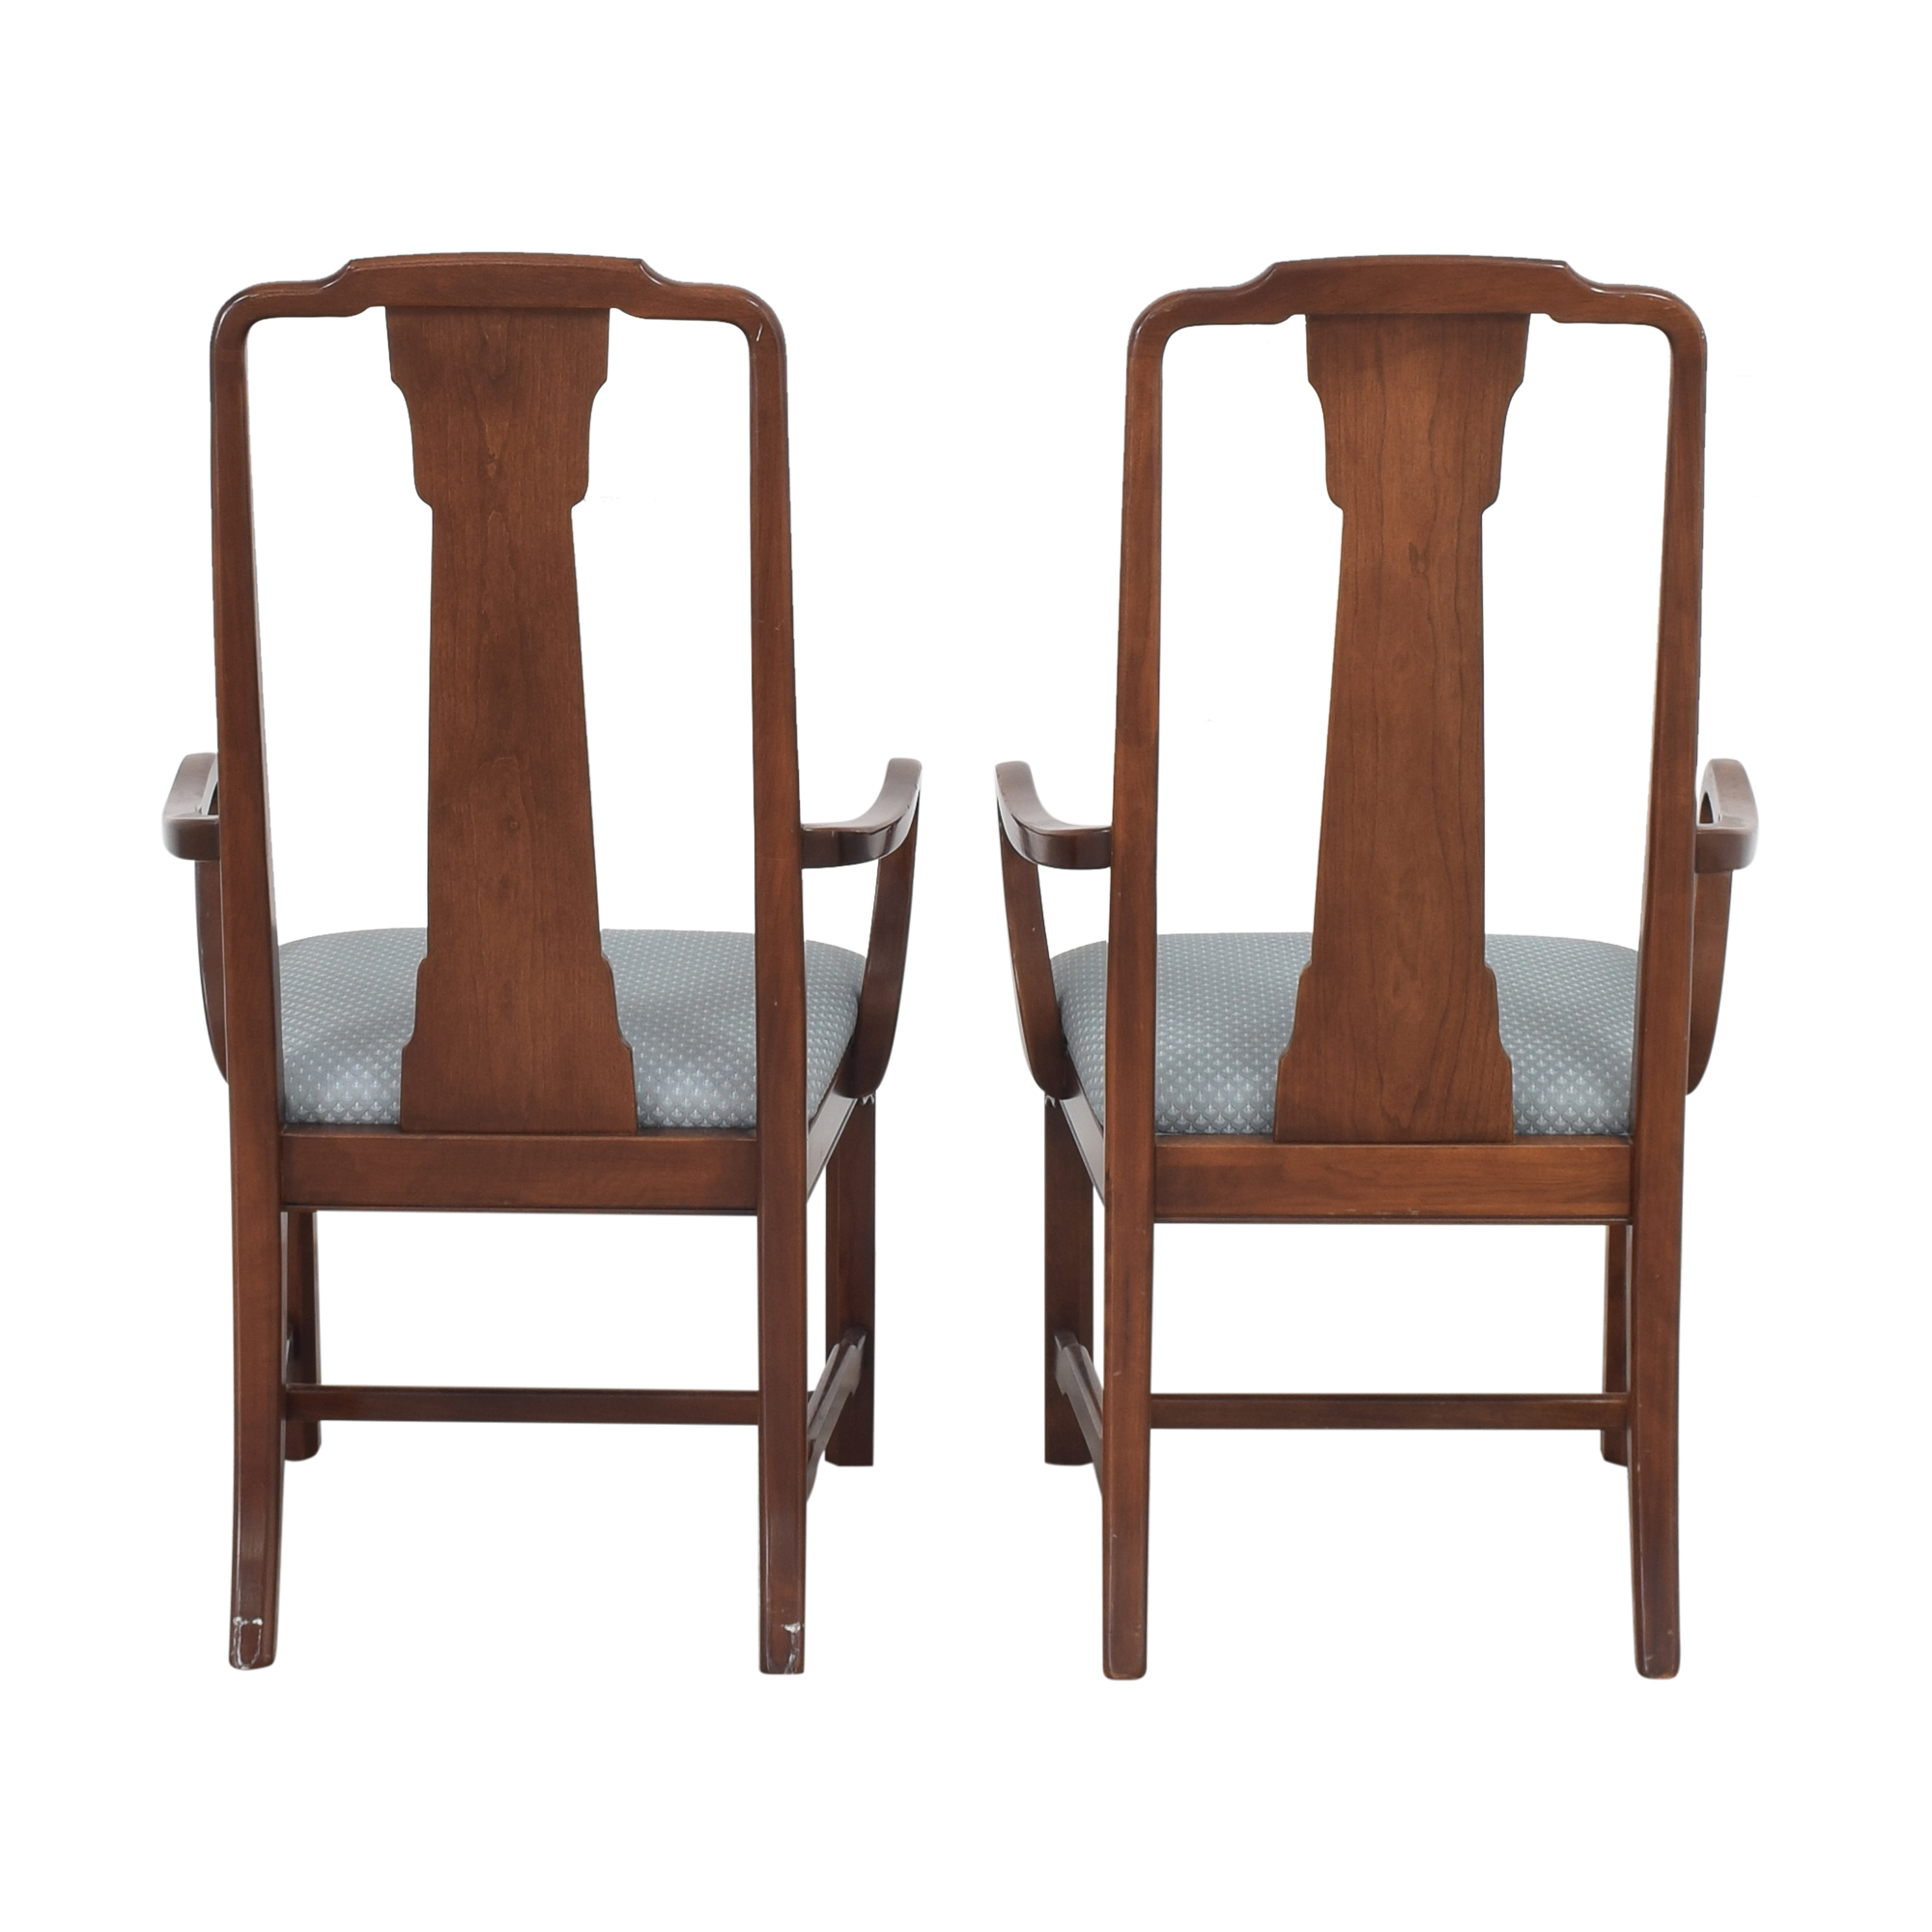 Ethan Allen Canova Campaign Dining Arm Chairs sale